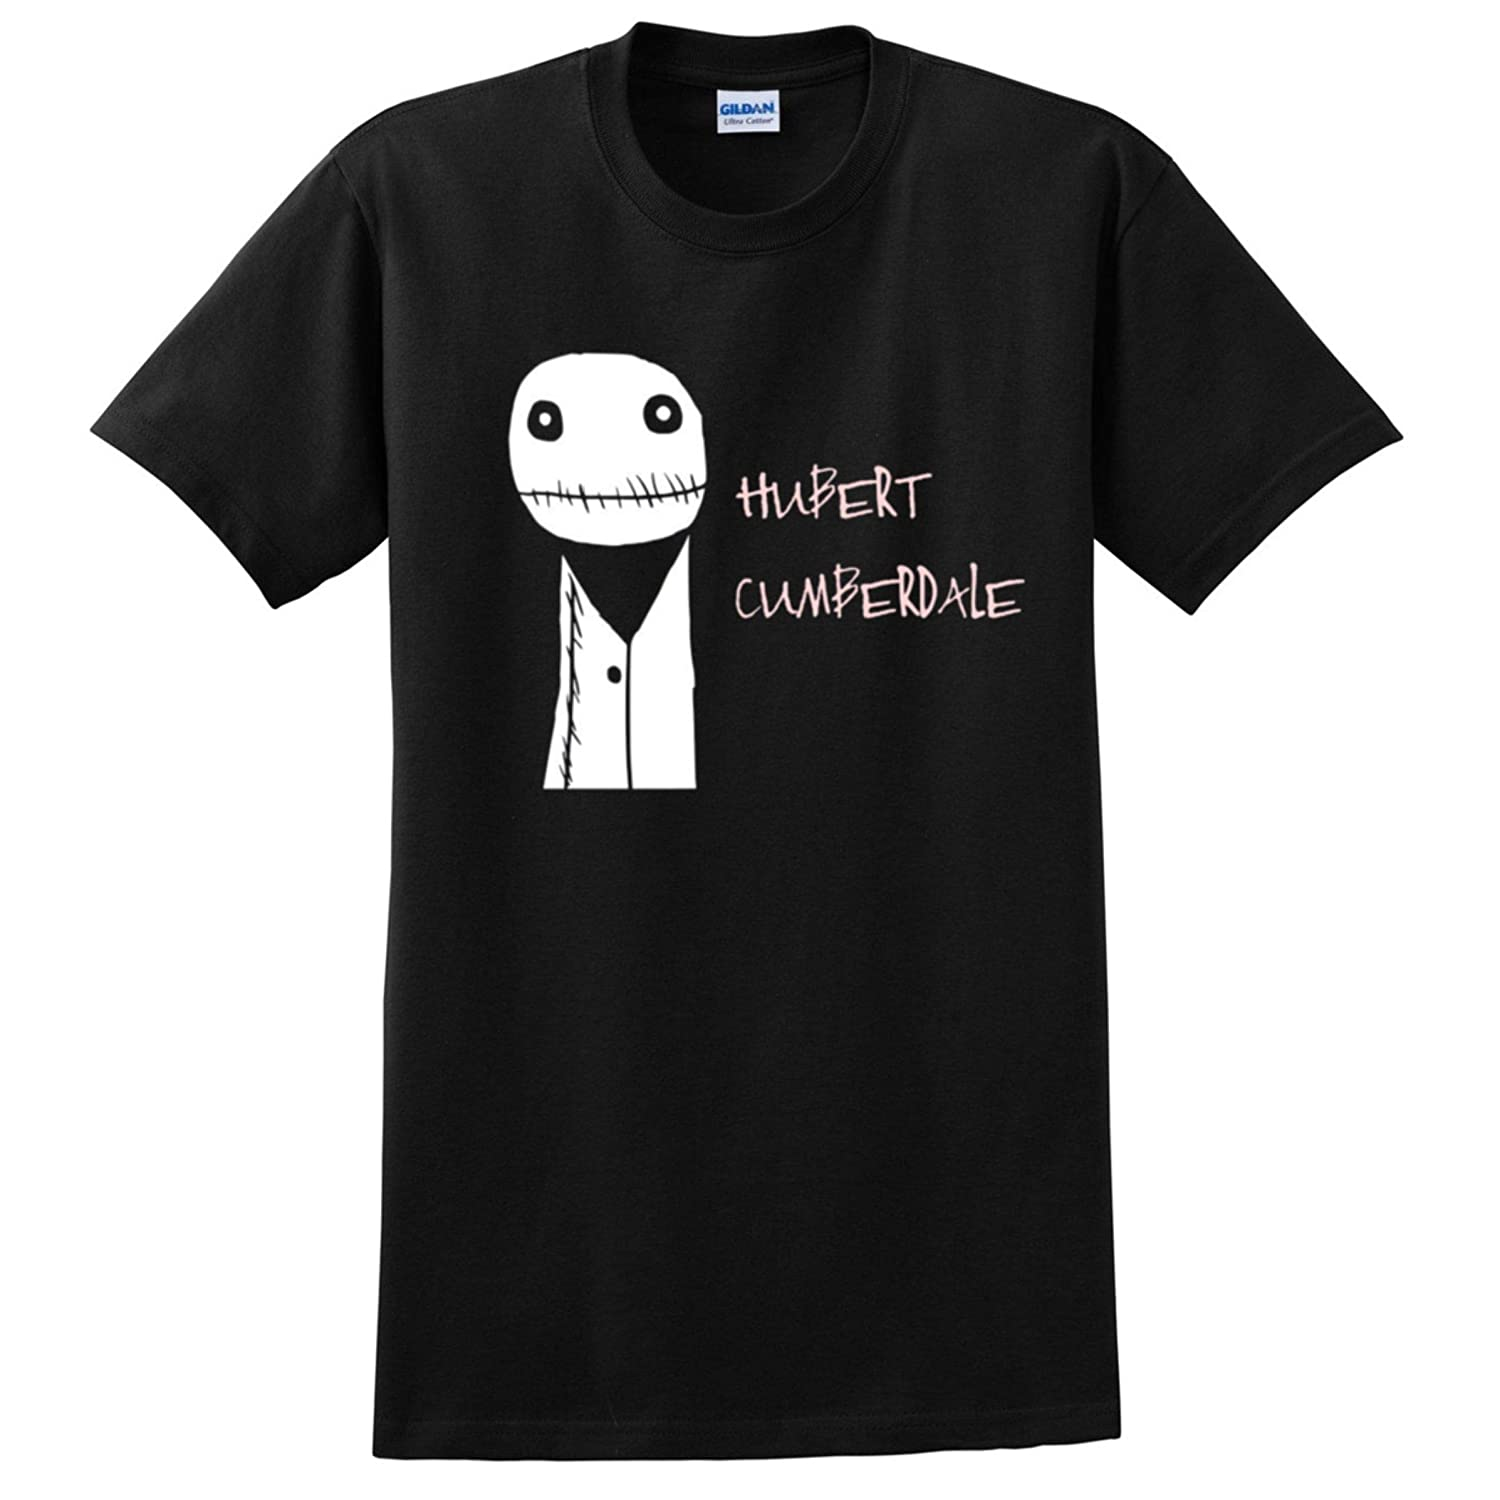 e33d781659be Fabric London Salad Fingers Hubert Cumberdale T-Shirt Black: Amazon.co.uk:  Clothing